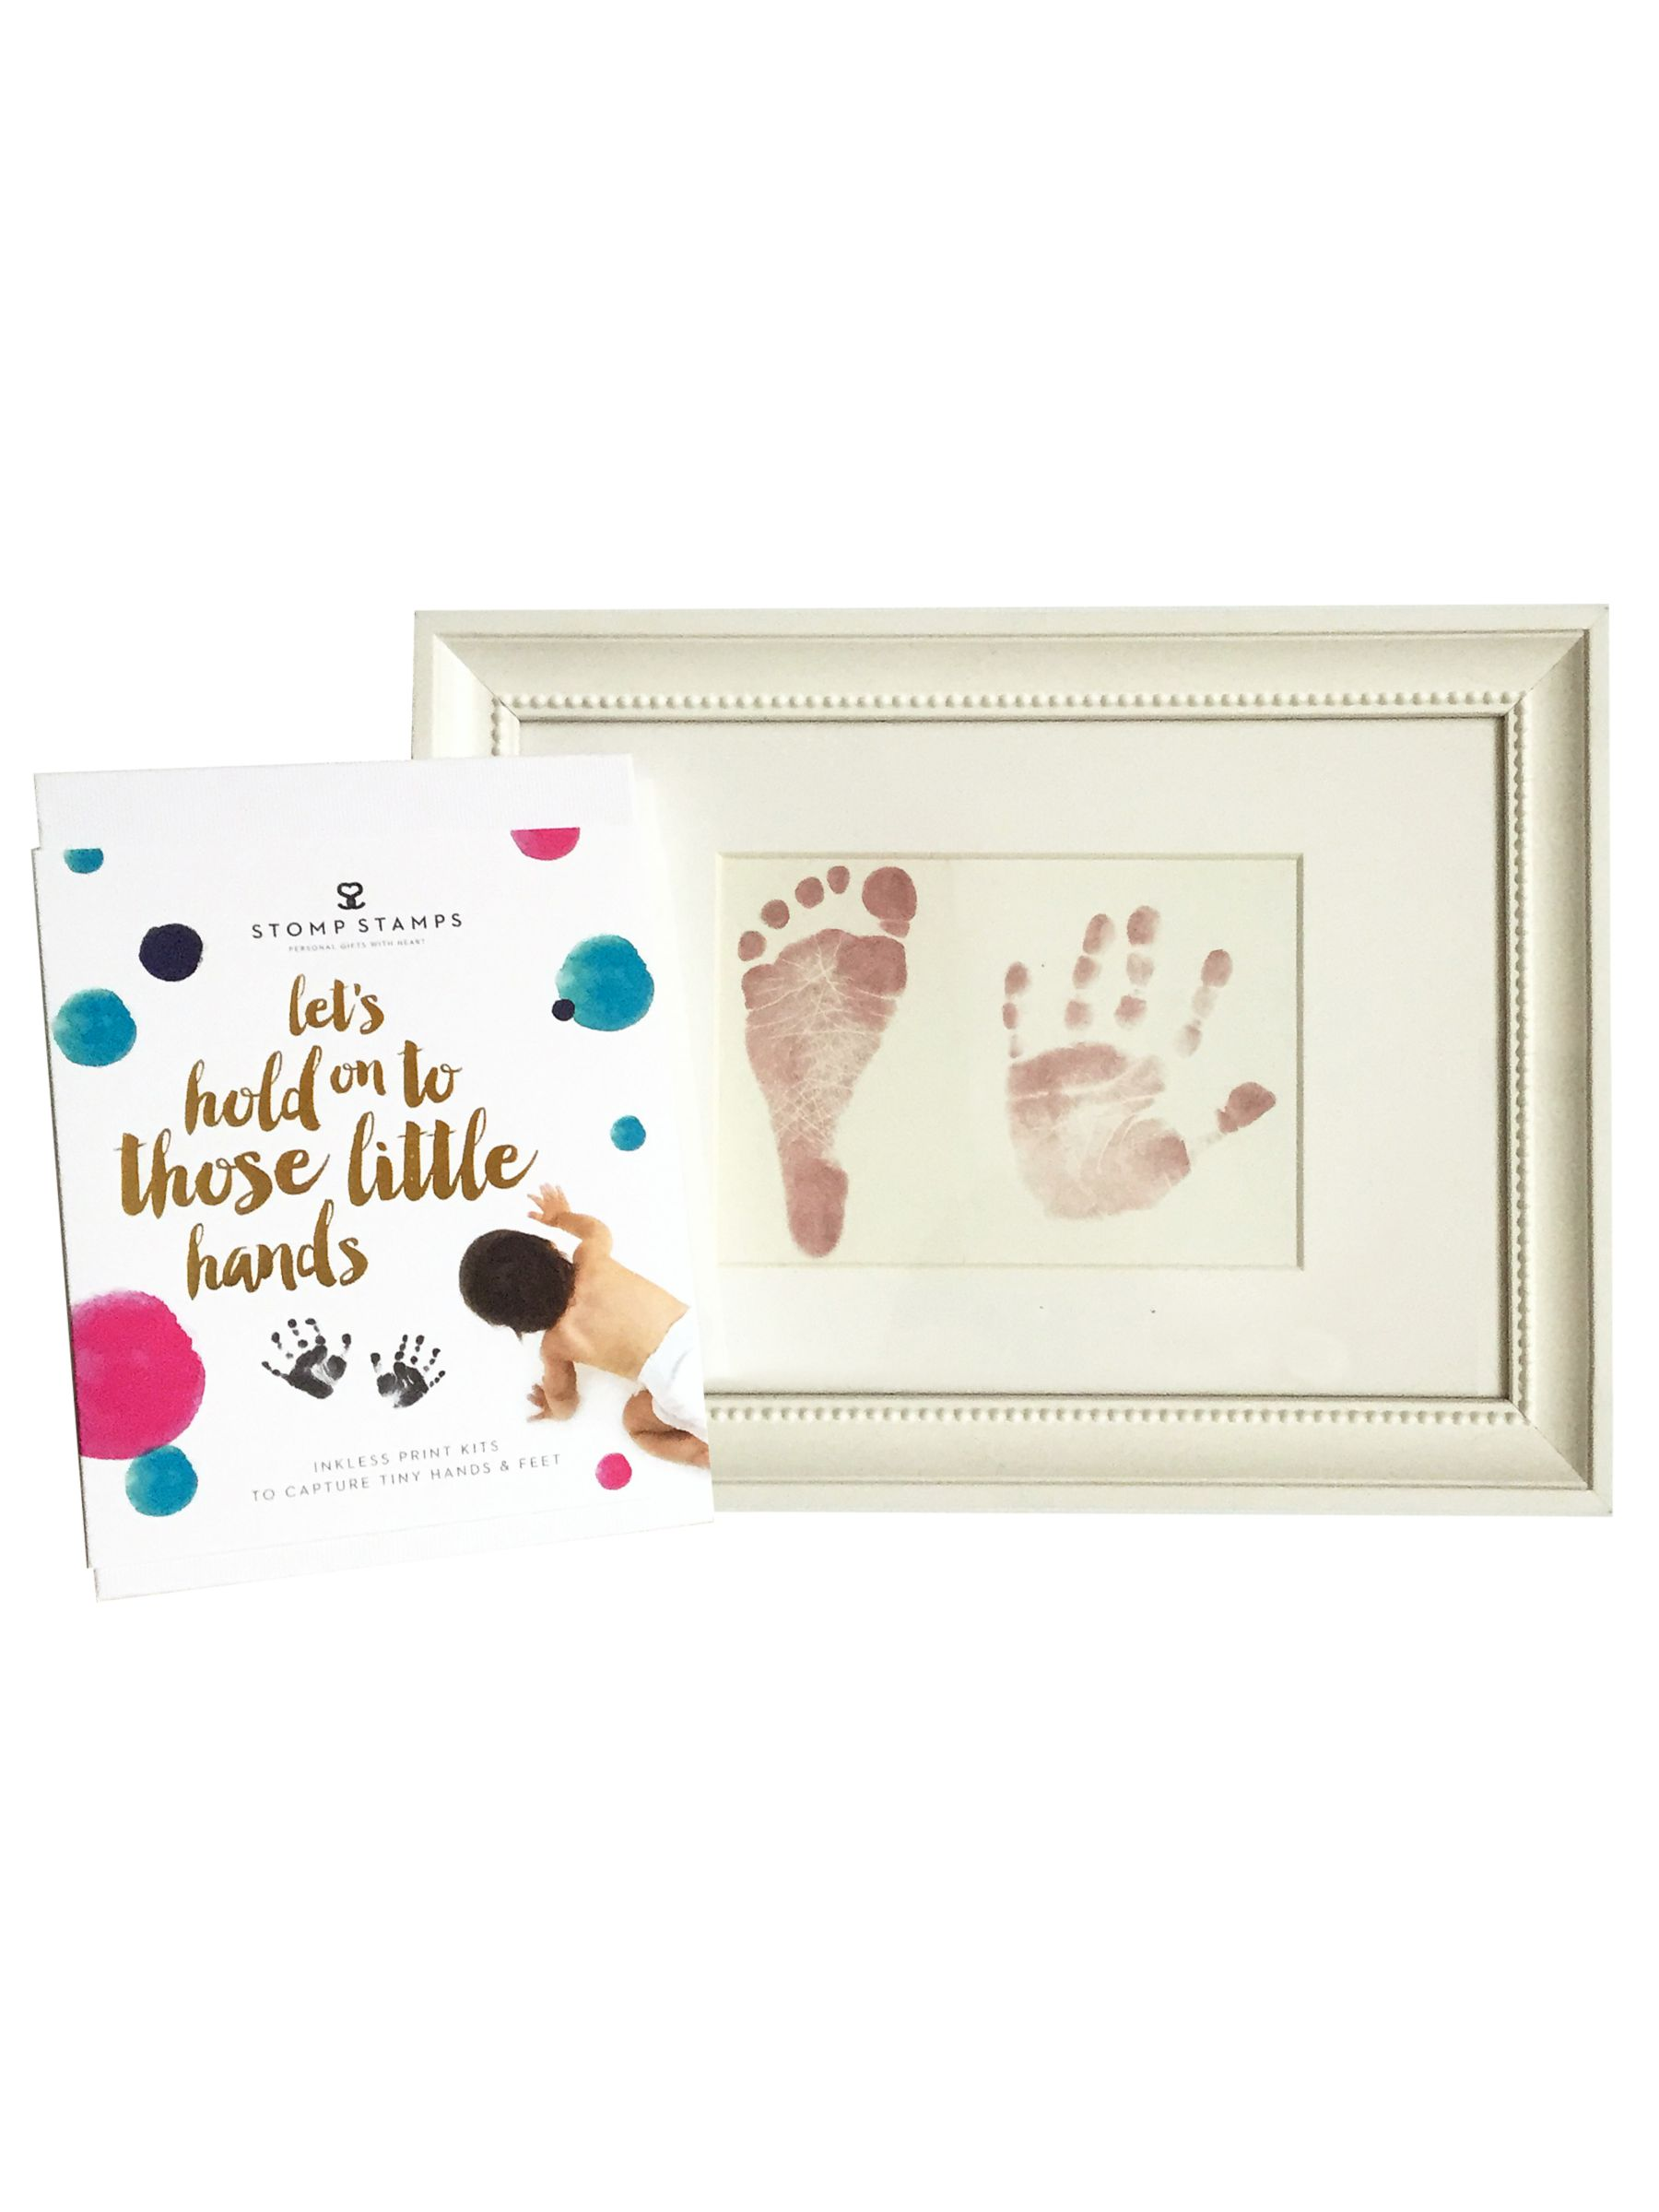 StompStamps StompStamps Magic Inkless Hand and Foot Imprint Kit